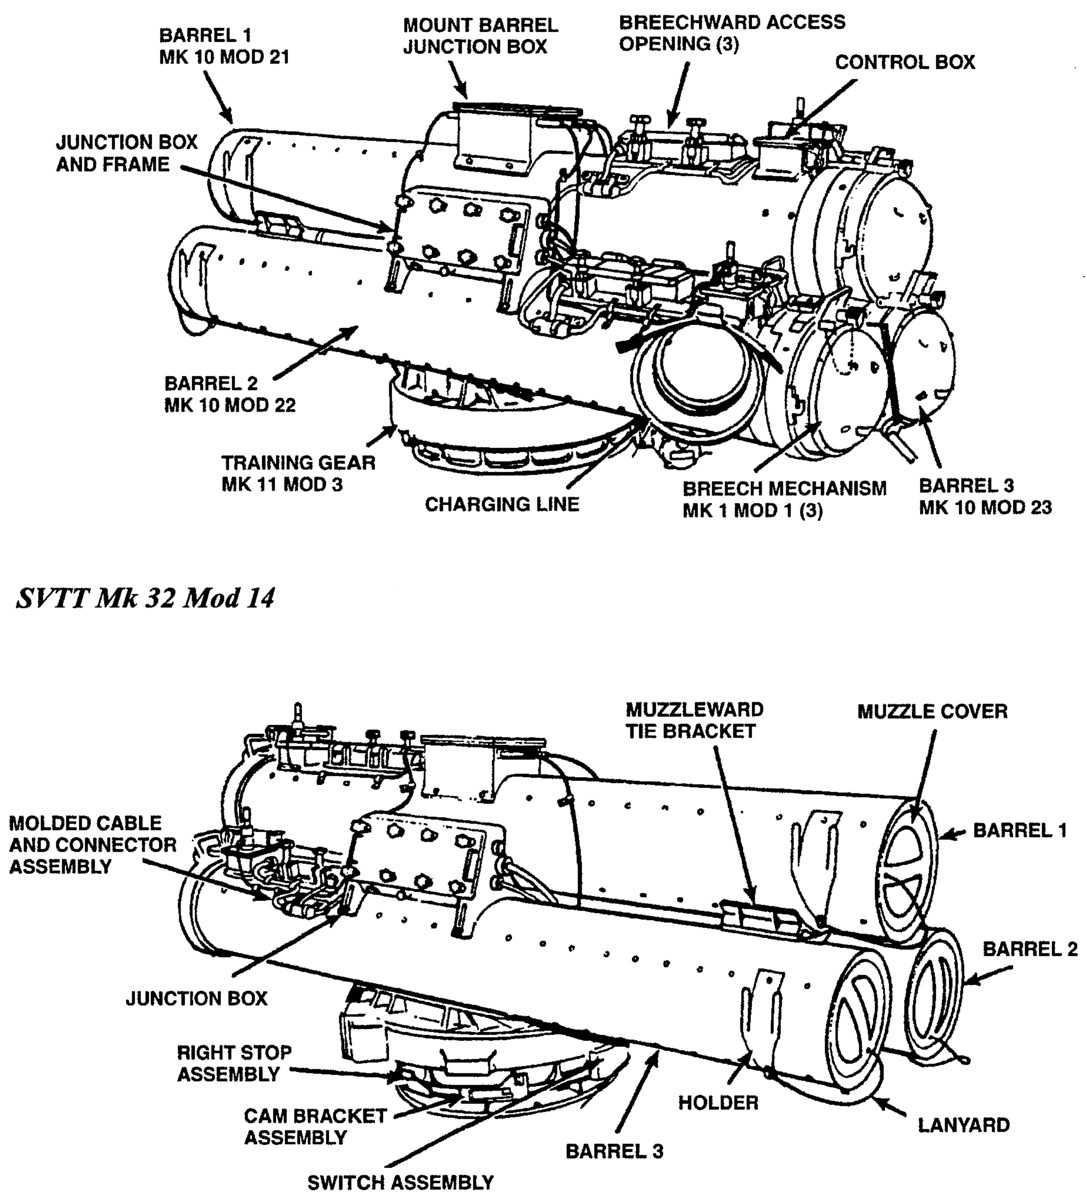 Technical Info additionally 1953 Buick Accessories Maintenance likewise Mk 32 Torpedo Tubes furthermore Parrot Ck3100 Wiring Instructions besides 4w1bd 1999 Ford Taurus Se 6cy 3 0 Daytime Running Lights Flash High Low Rapidly Not. on electrical installation training